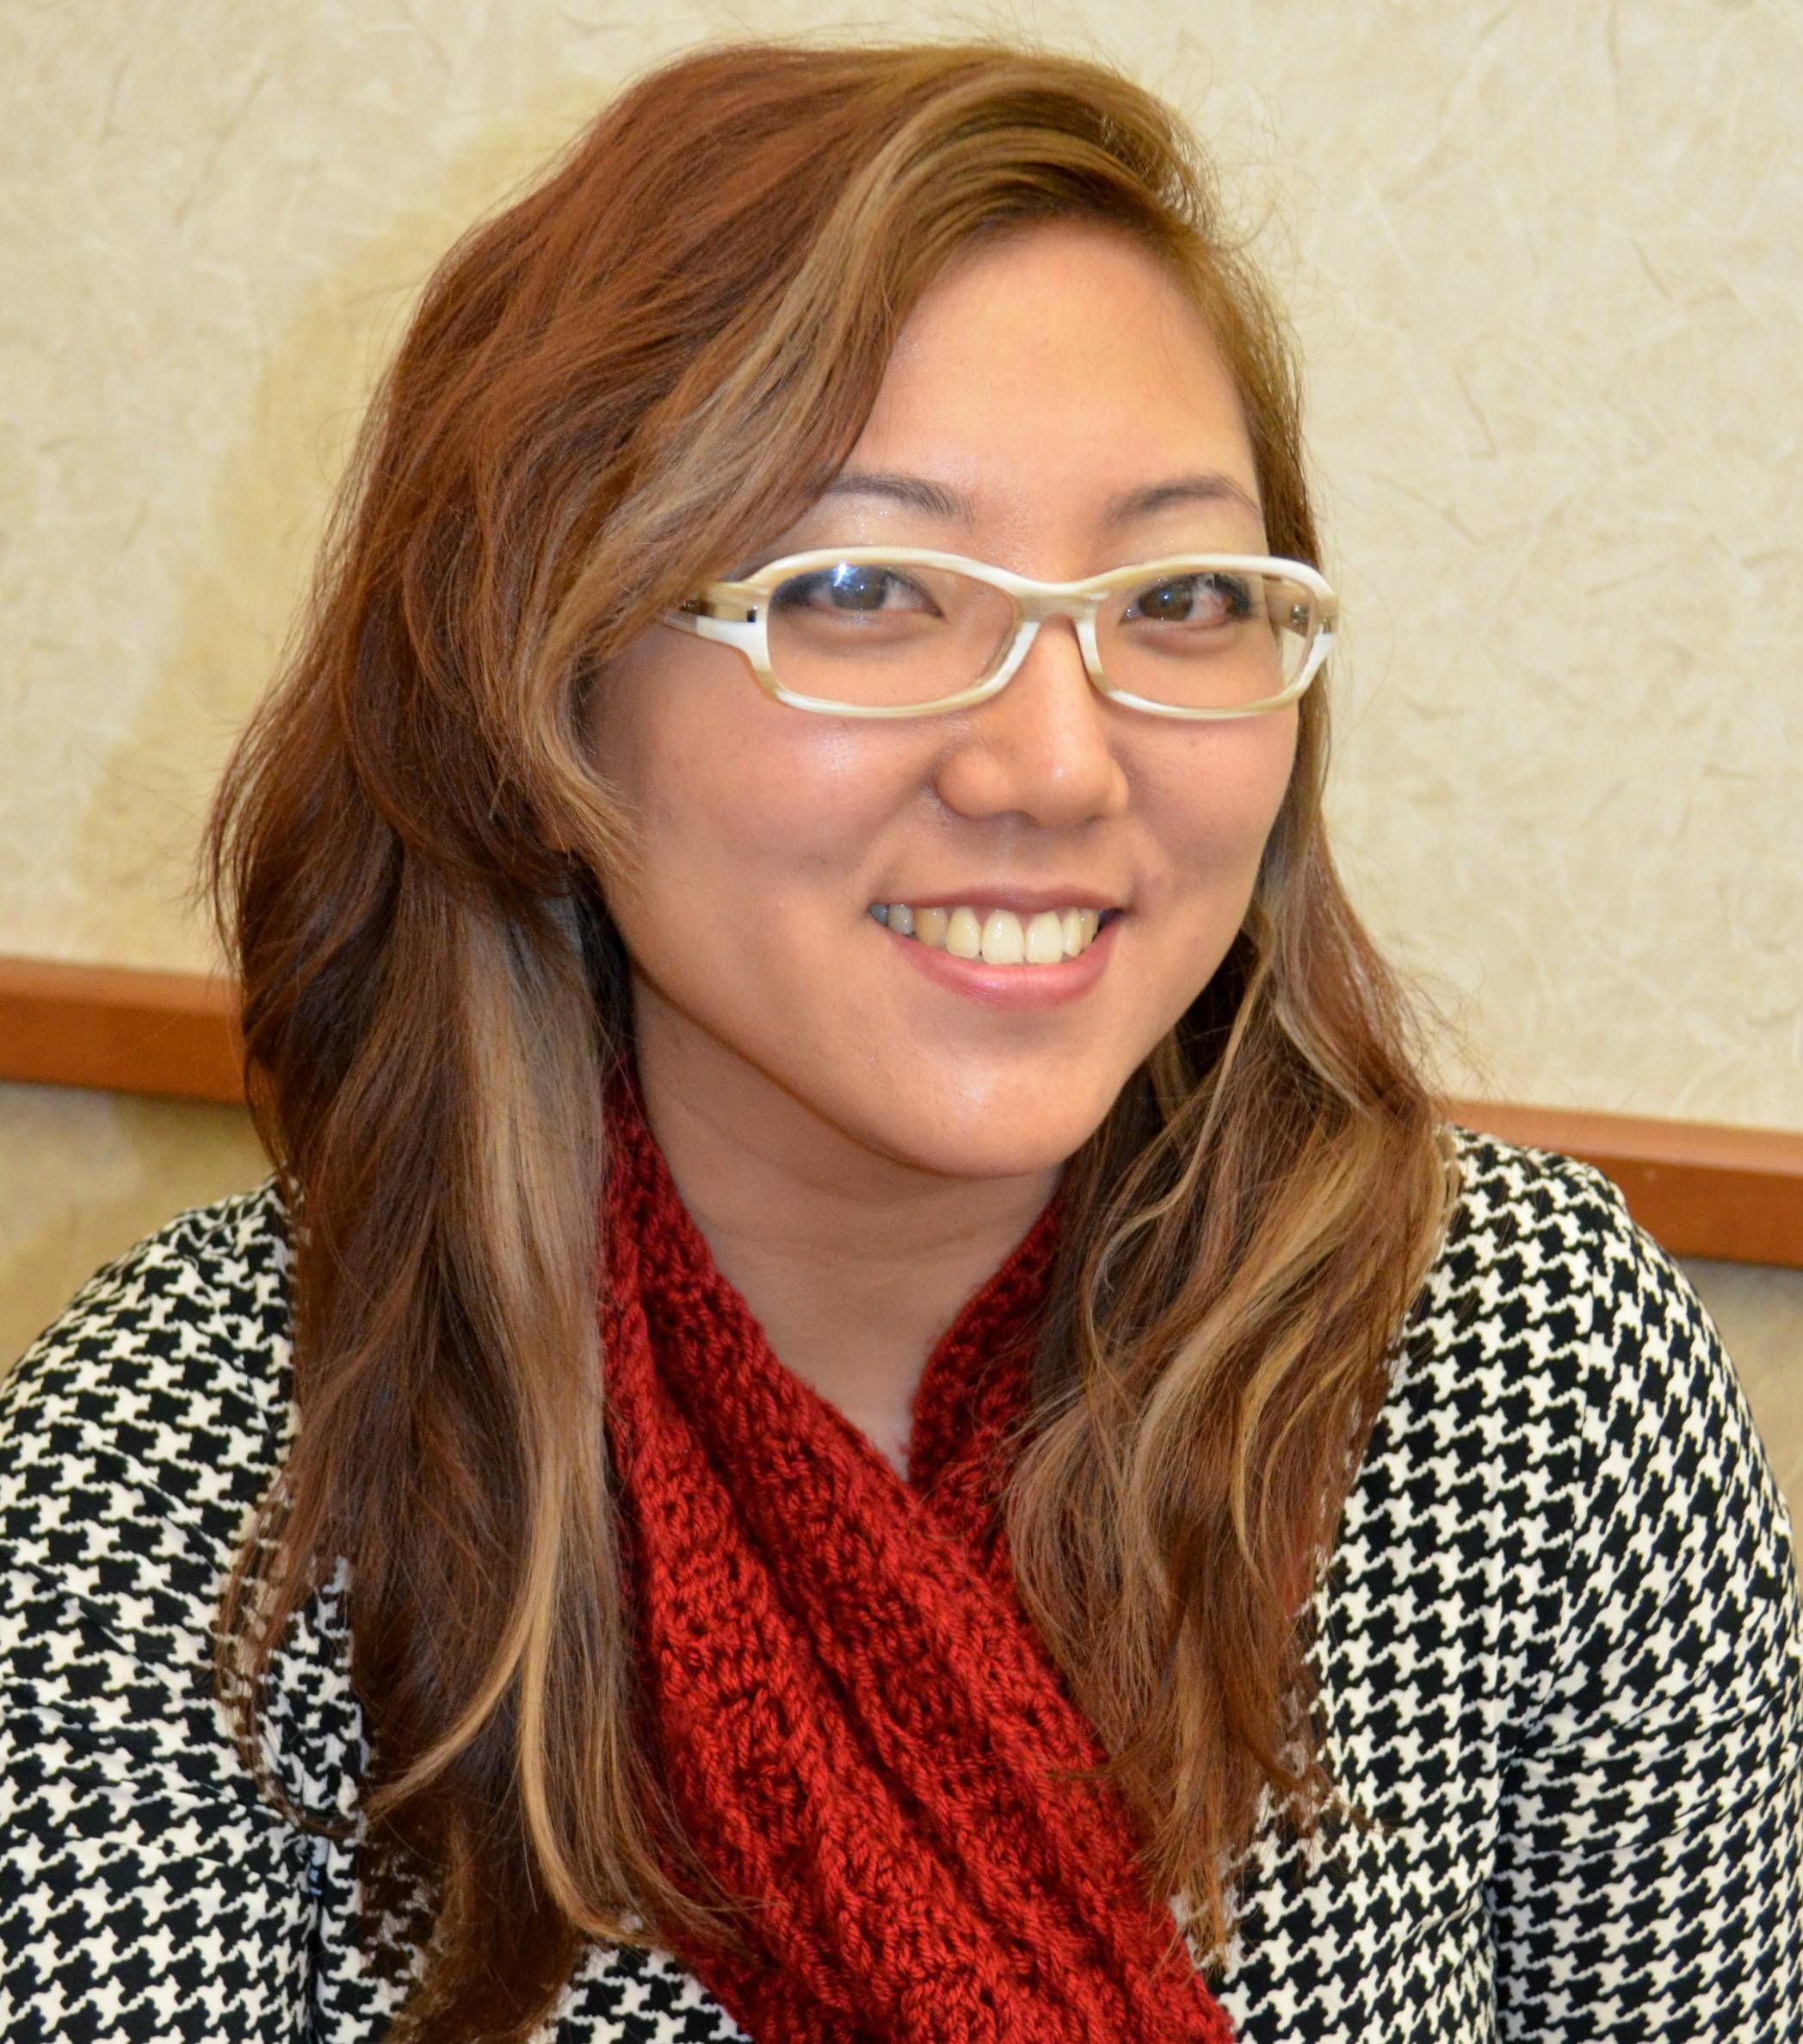 Holly Kim, running for Mundelein Village Board (4-year Terms)